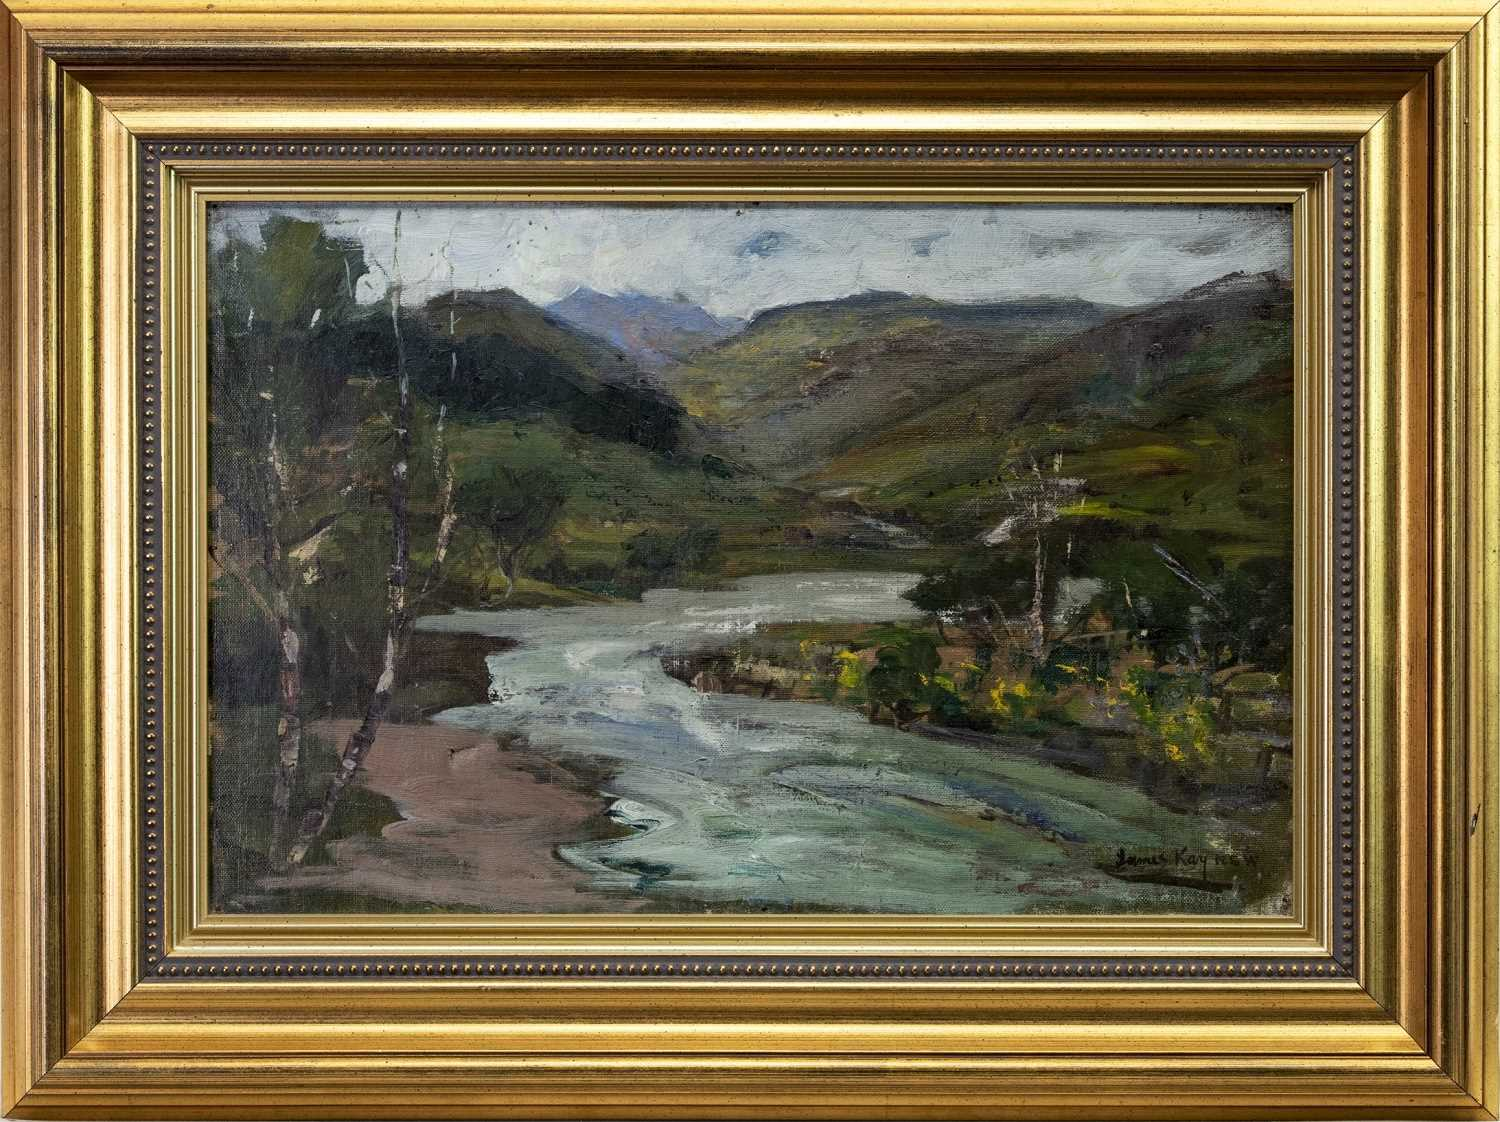 Lot 84 - RIVER LANDSCAPE, AN OIL BY JAMES KAY